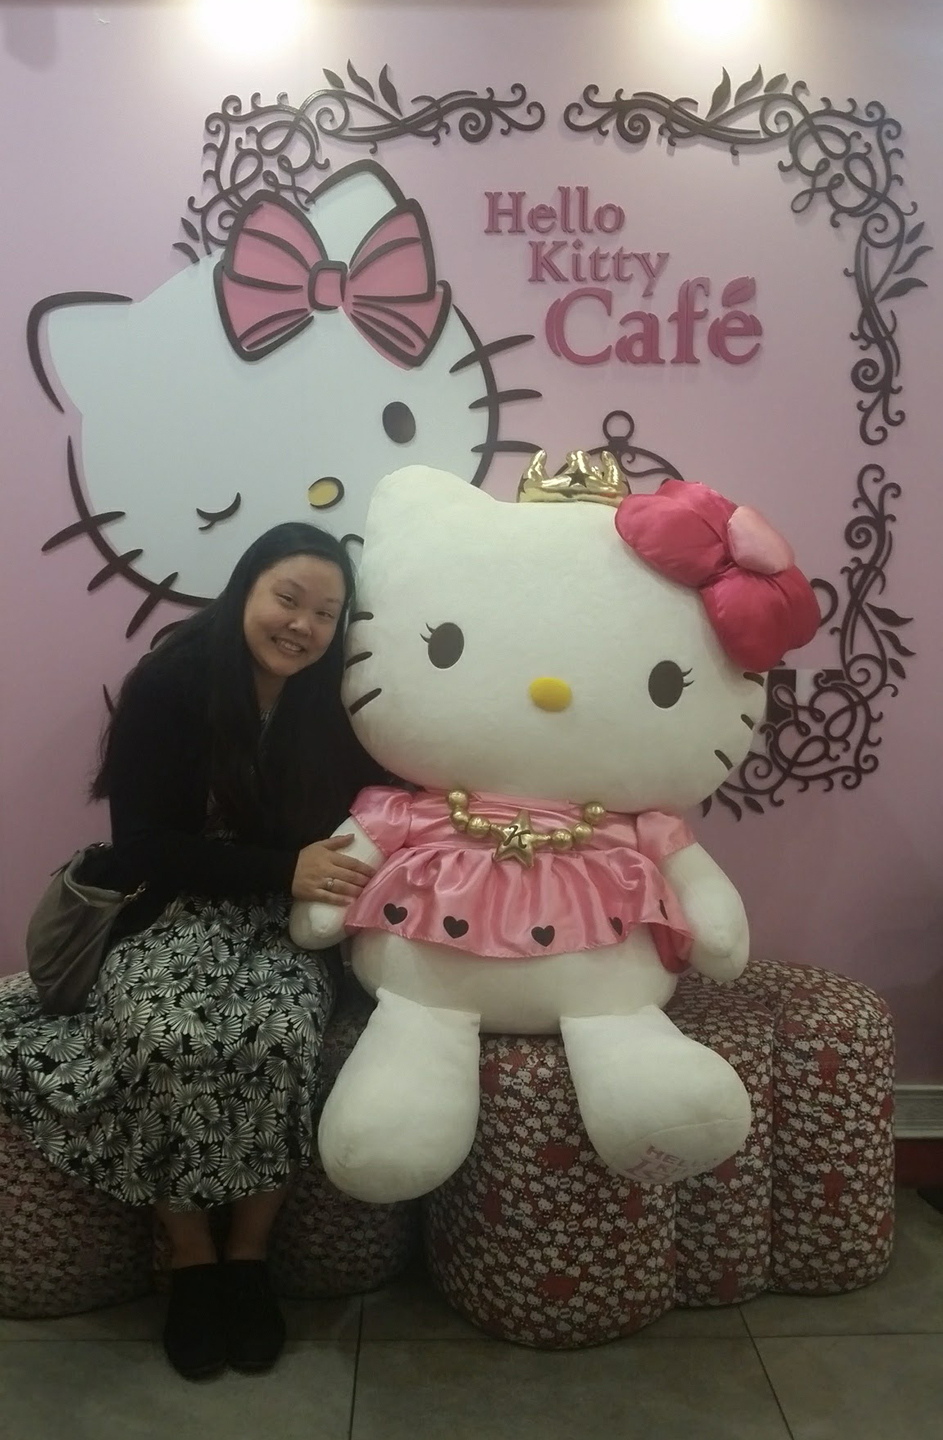 Korea Trip - Myeongdong Hello Kitty Cafe2